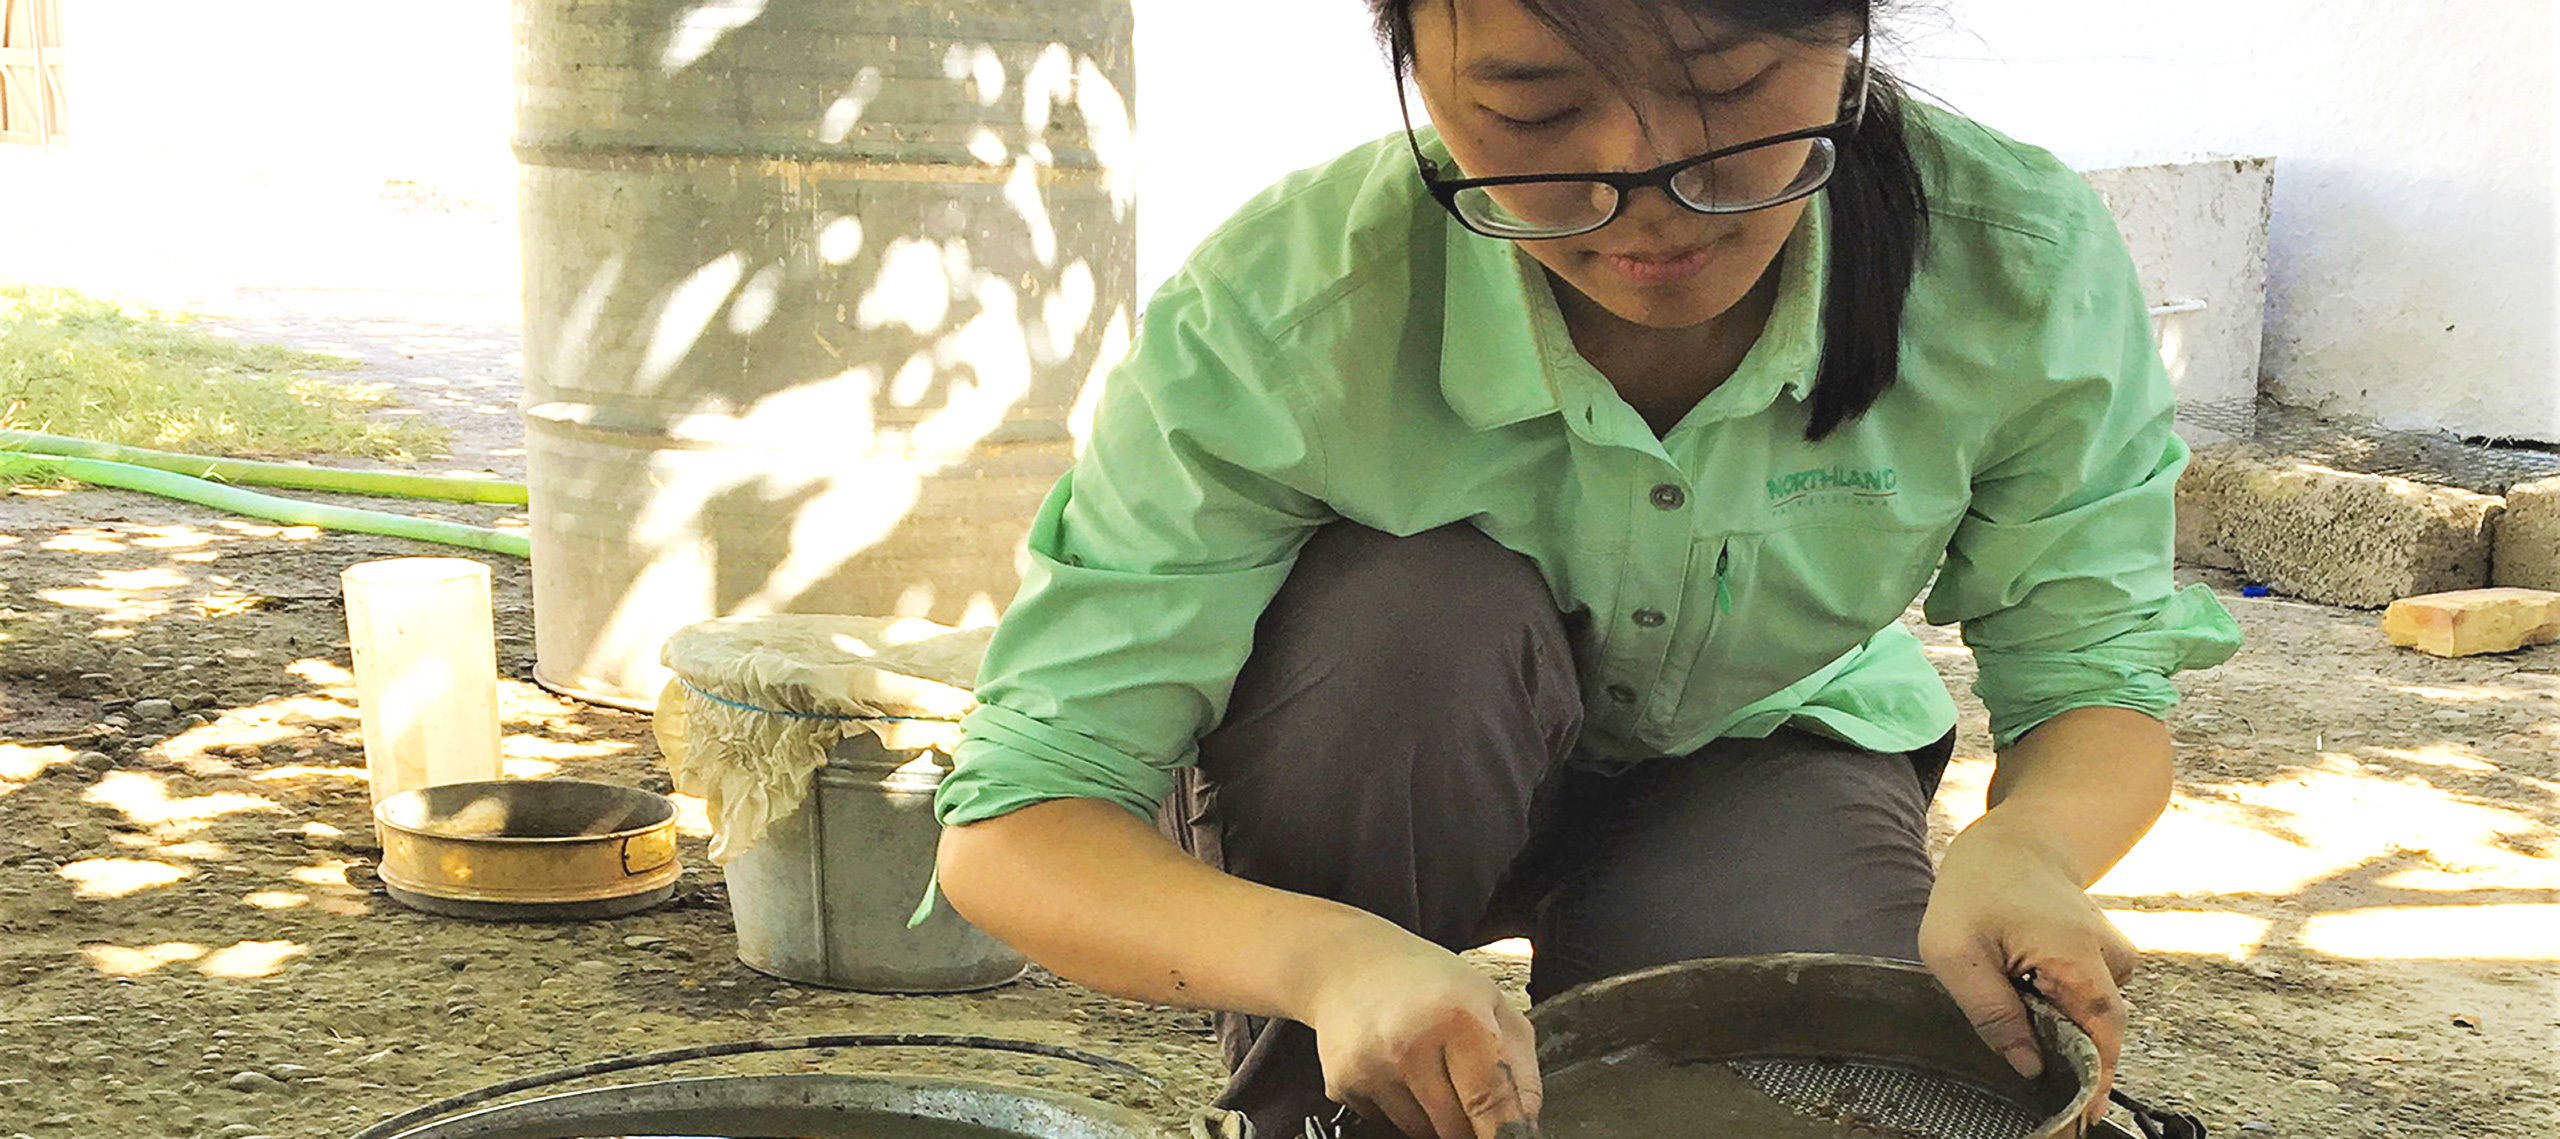 A woman in a green shirt and gray slacks with glasses kneels and works wet soil through a round pan with a mesh base.